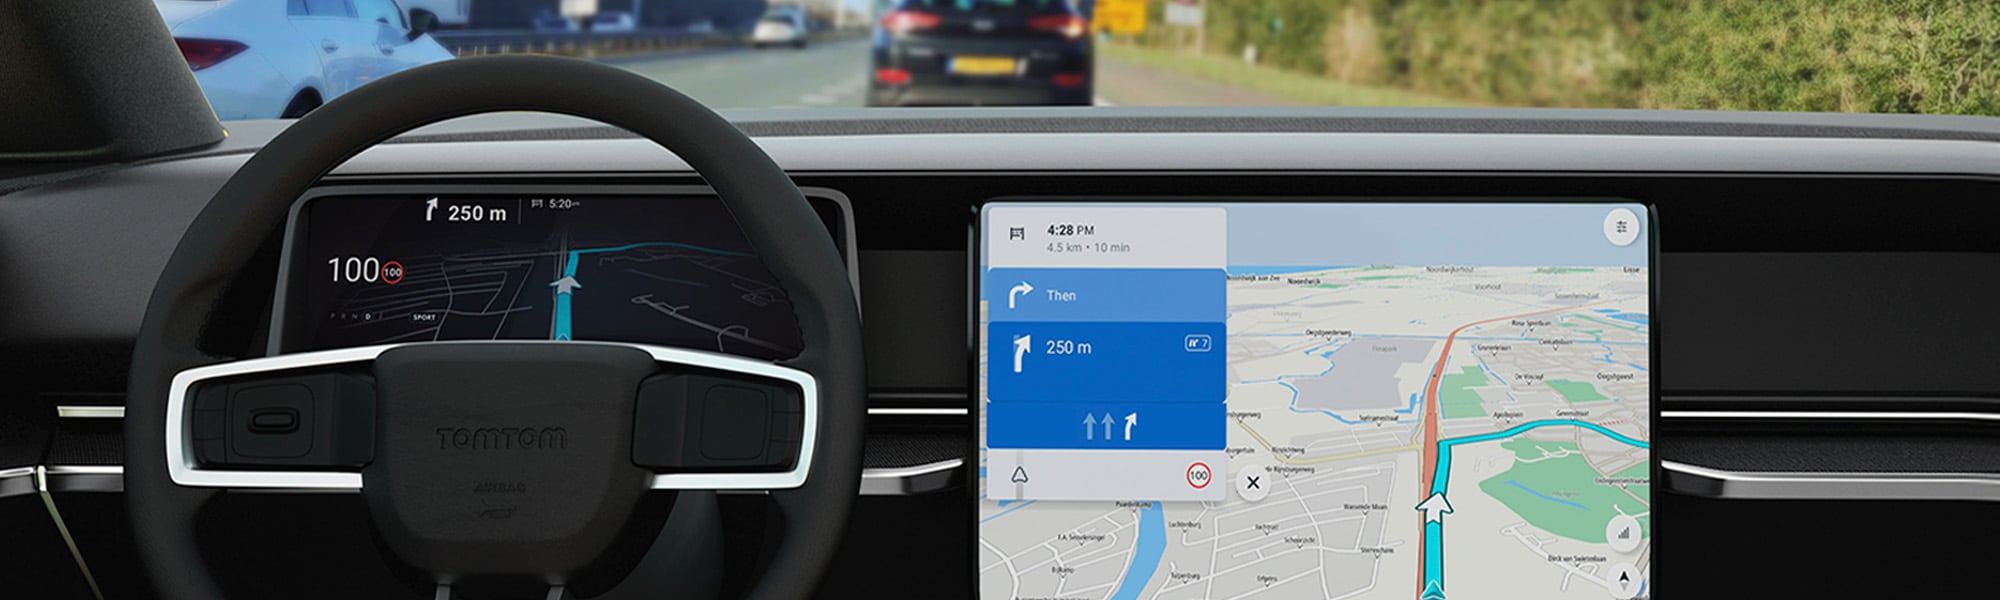 Informing without overwhelming, the secret to designing great in-car user experiences